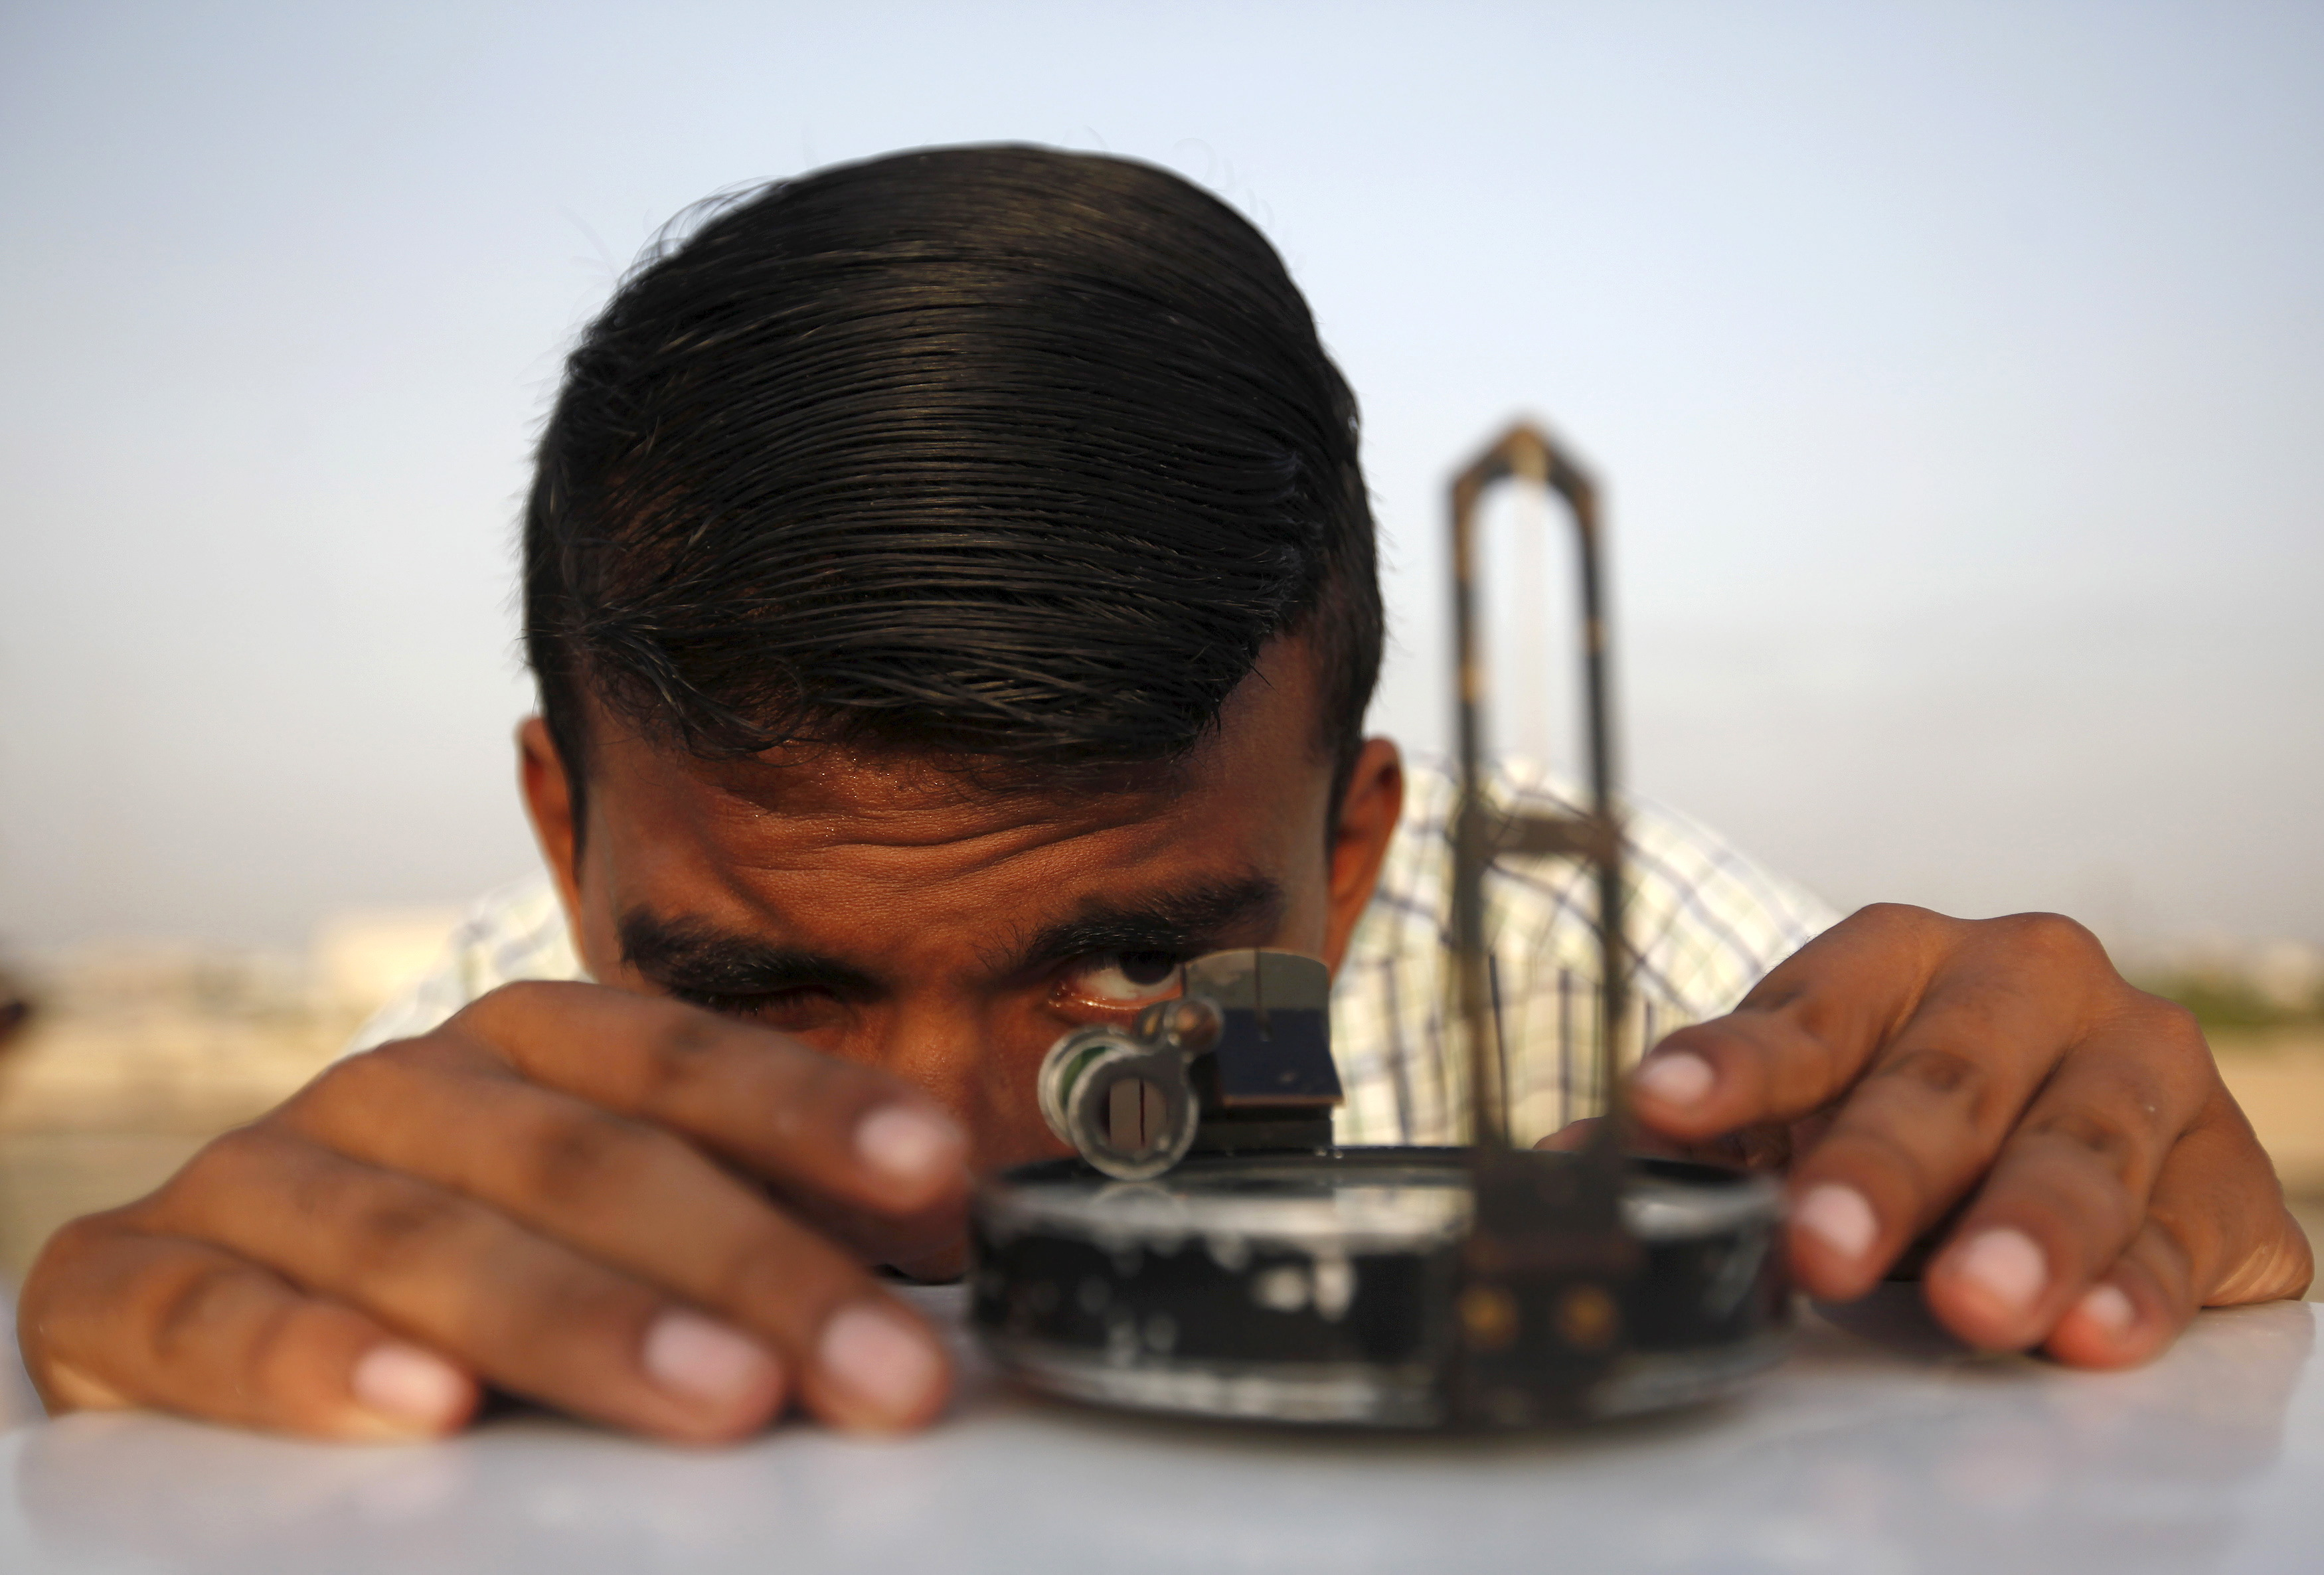 A man adjusts his compass to find the proper direction before installing a theodolite to look for the new moon that will mark the start of Ramadan in Karachi, Pakistan on June 17, 2015. Photo by Akhtar Soomro/Reuters